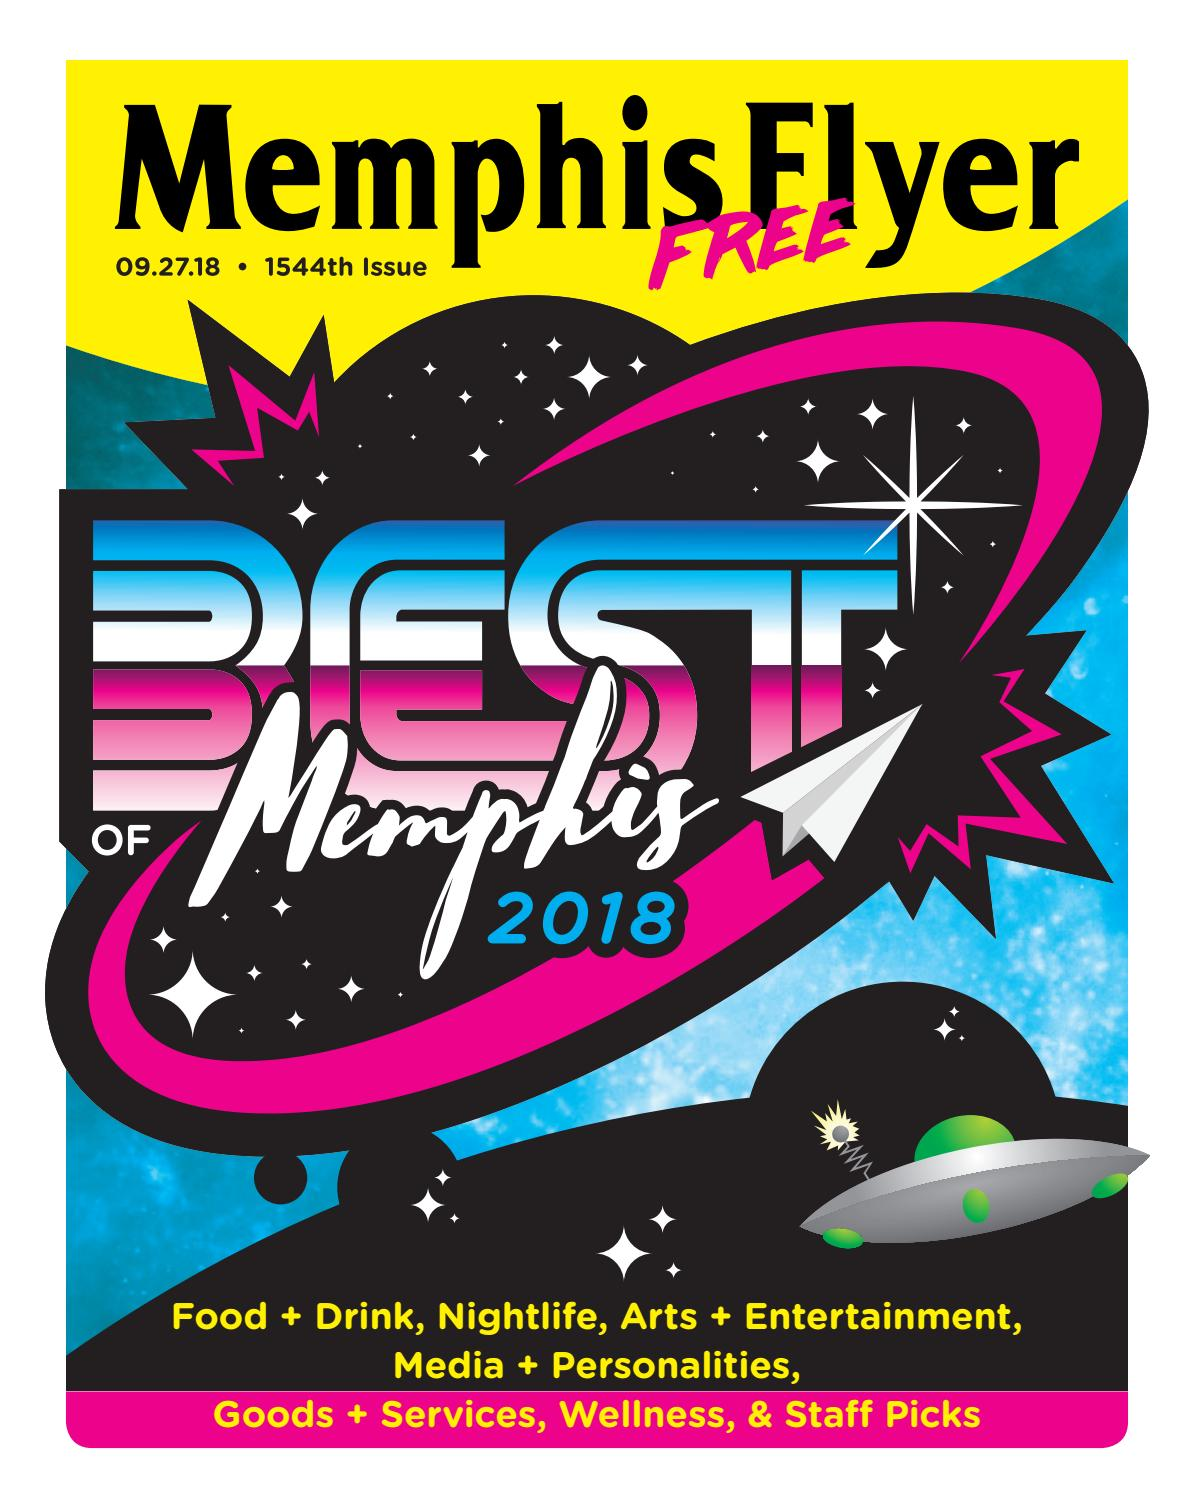 Memphis Flyer 9 27 18 by Contemporary Media - issuu